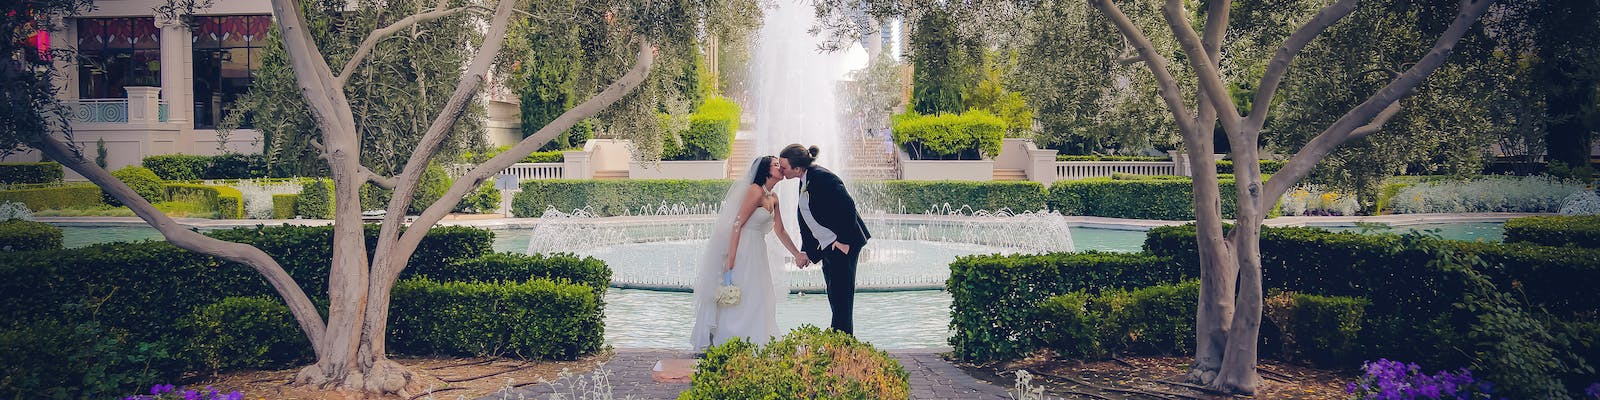 Husband and wife kissing in front of a garden fountain